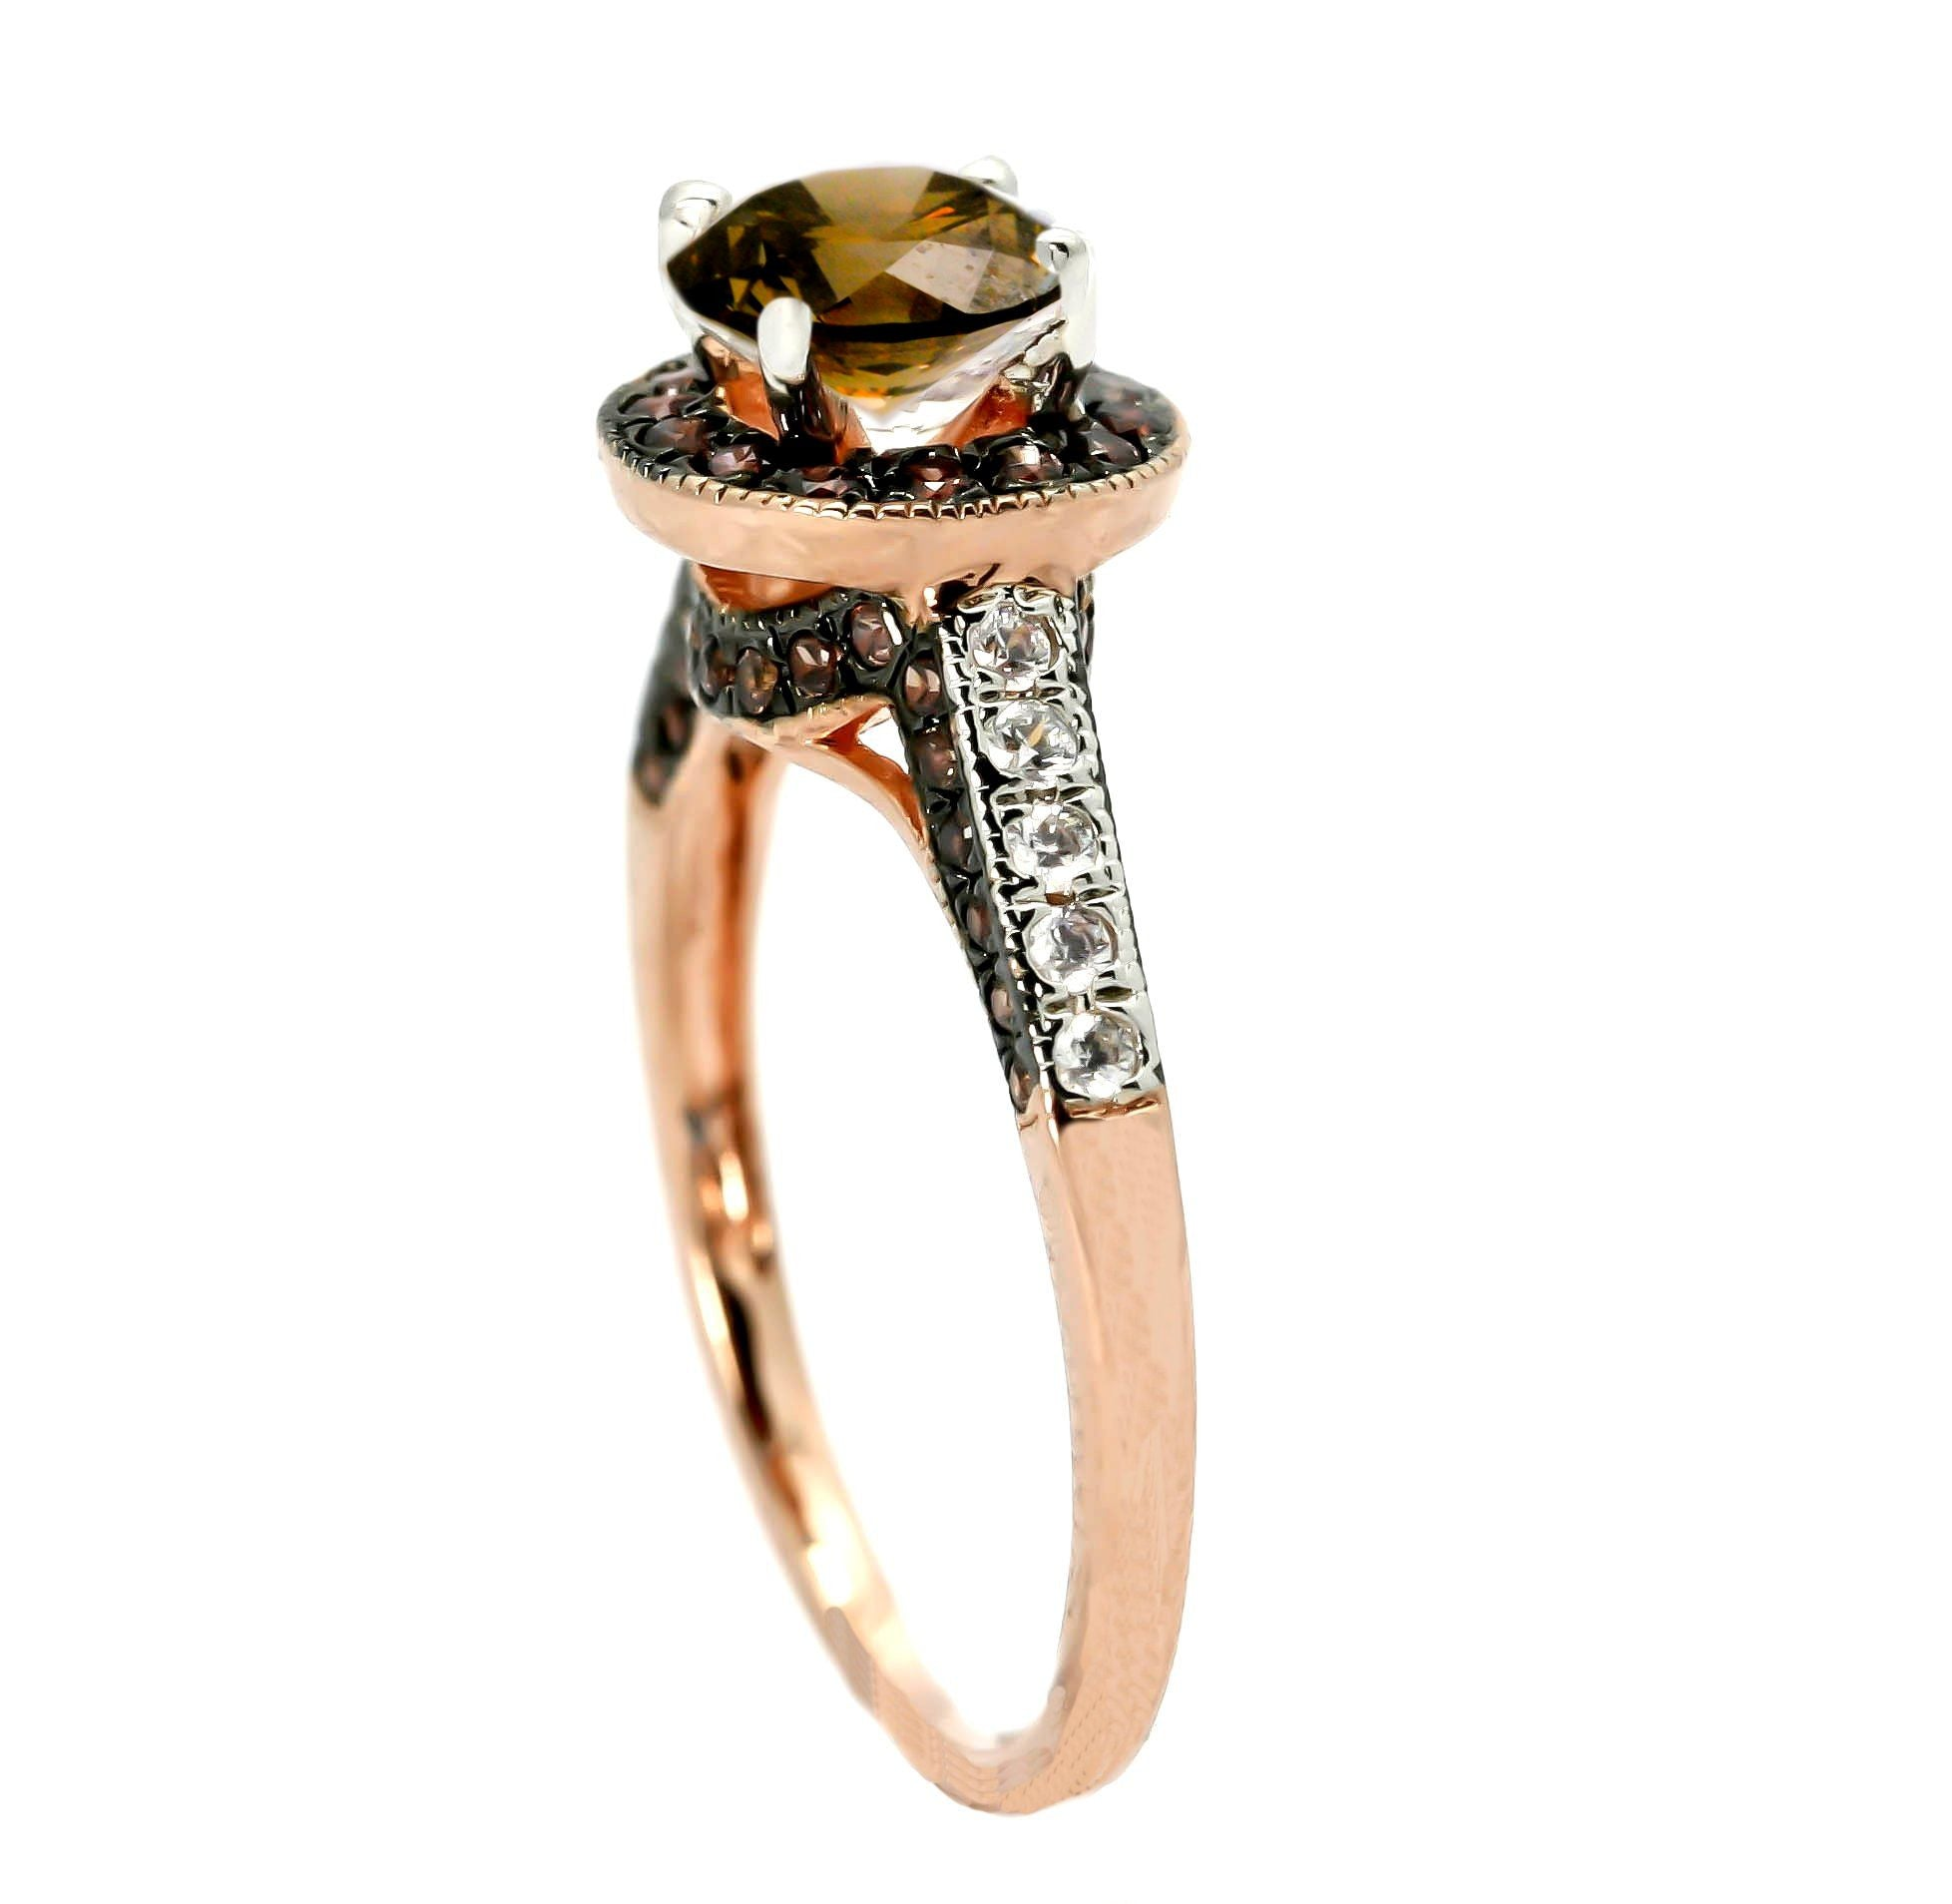 Fancy Brown Diamond Engagement Ring, Unique 1 Carat Floating Halo Rose Gold, White & Fancy Color Brown Diamonds - BD94641